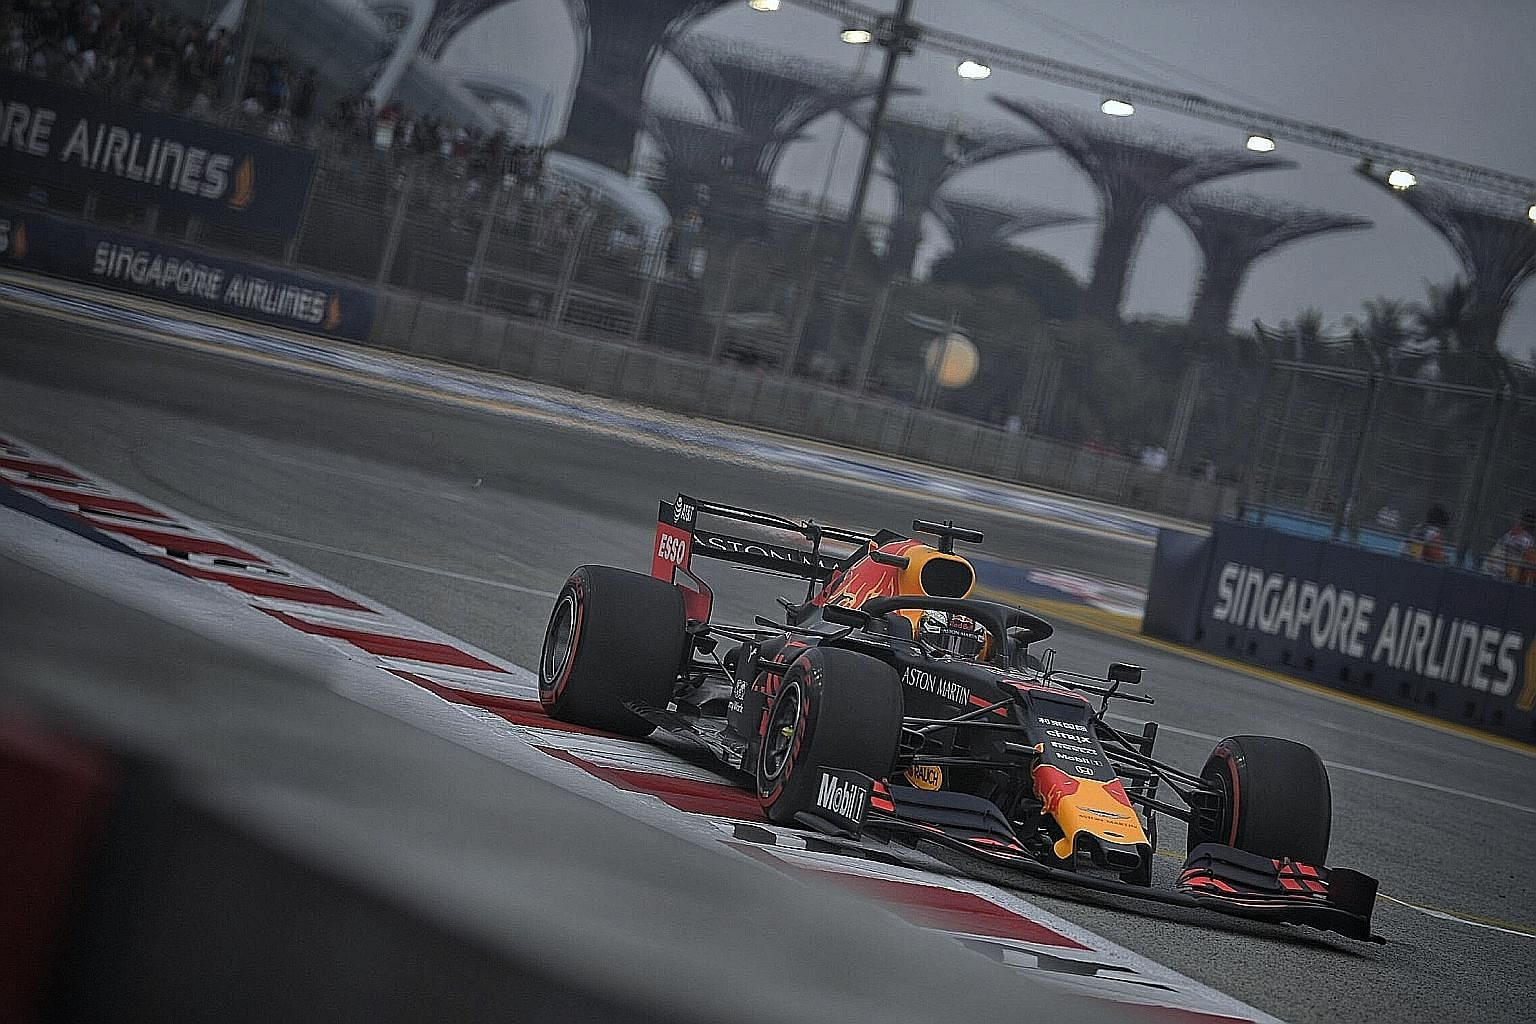 Red Bull's Max Verstappen was second quickest during yesterday's second practice session as he bids to better last year's second-place finish at the Singapore GP, his only podium finish in six street races.